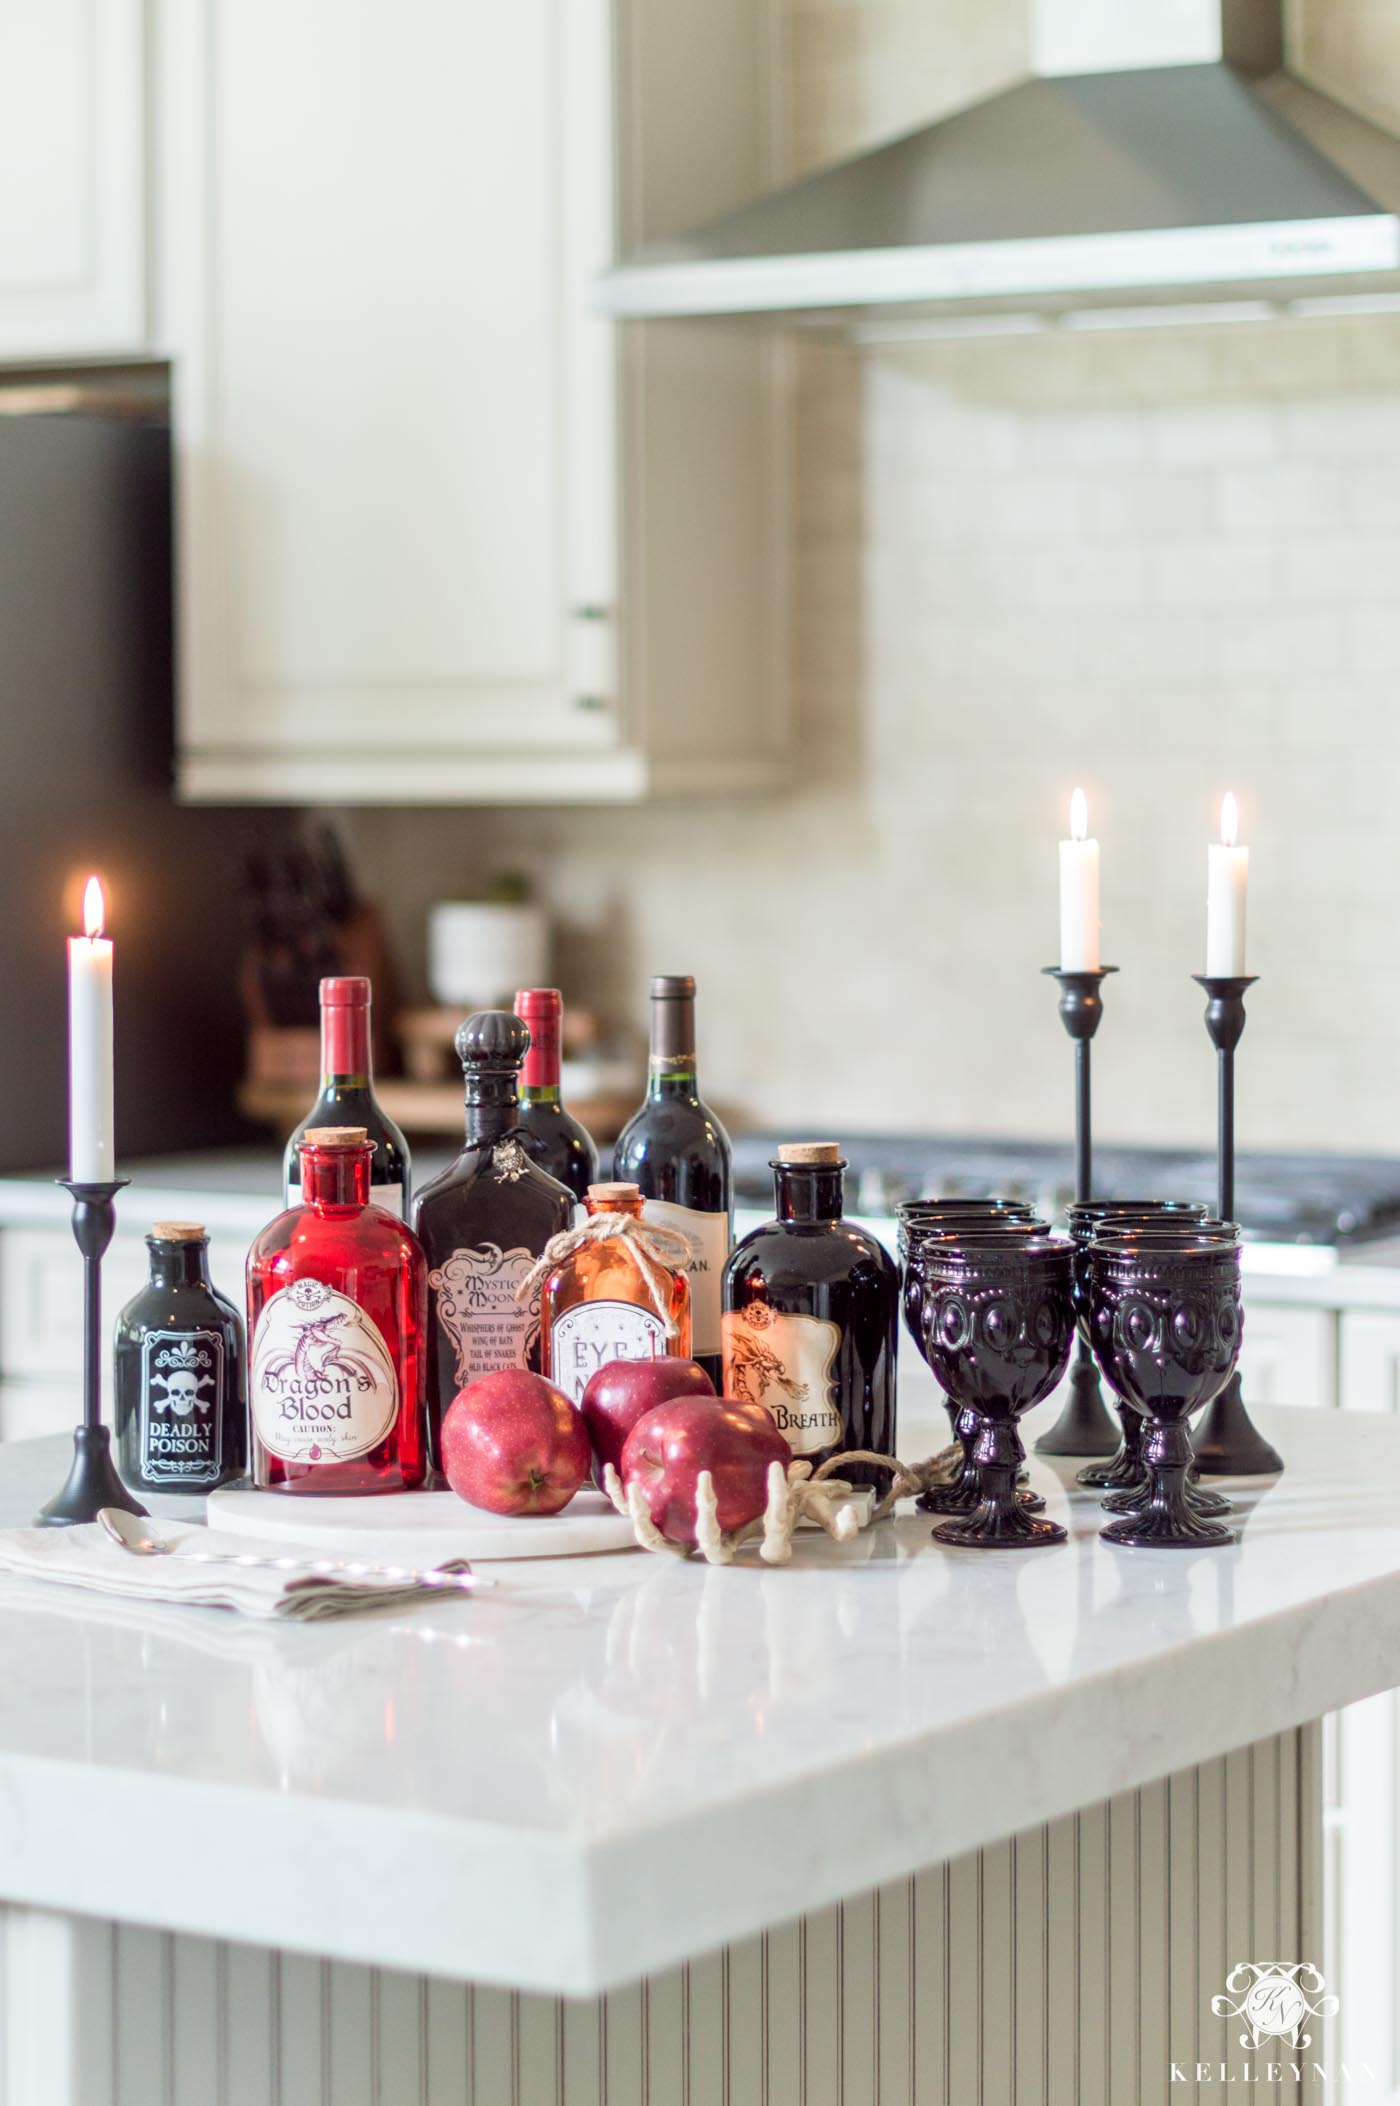 Halloween Kitchen Inspo and Other Home Decor Ideas